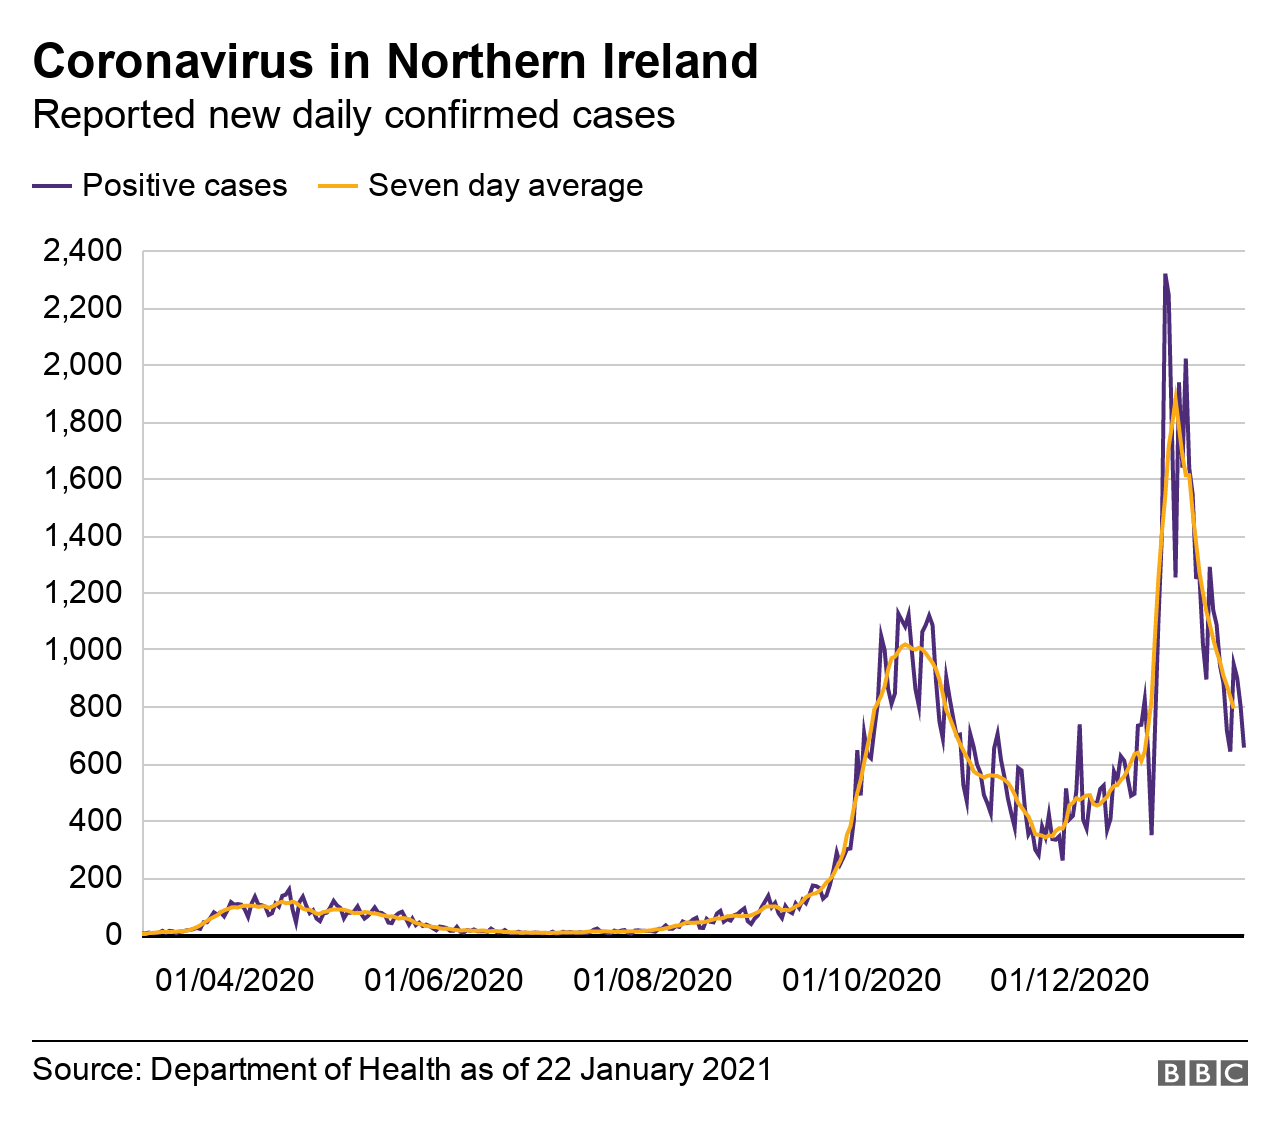 A graph showing the number of coronavirus cases in Northern Ireland